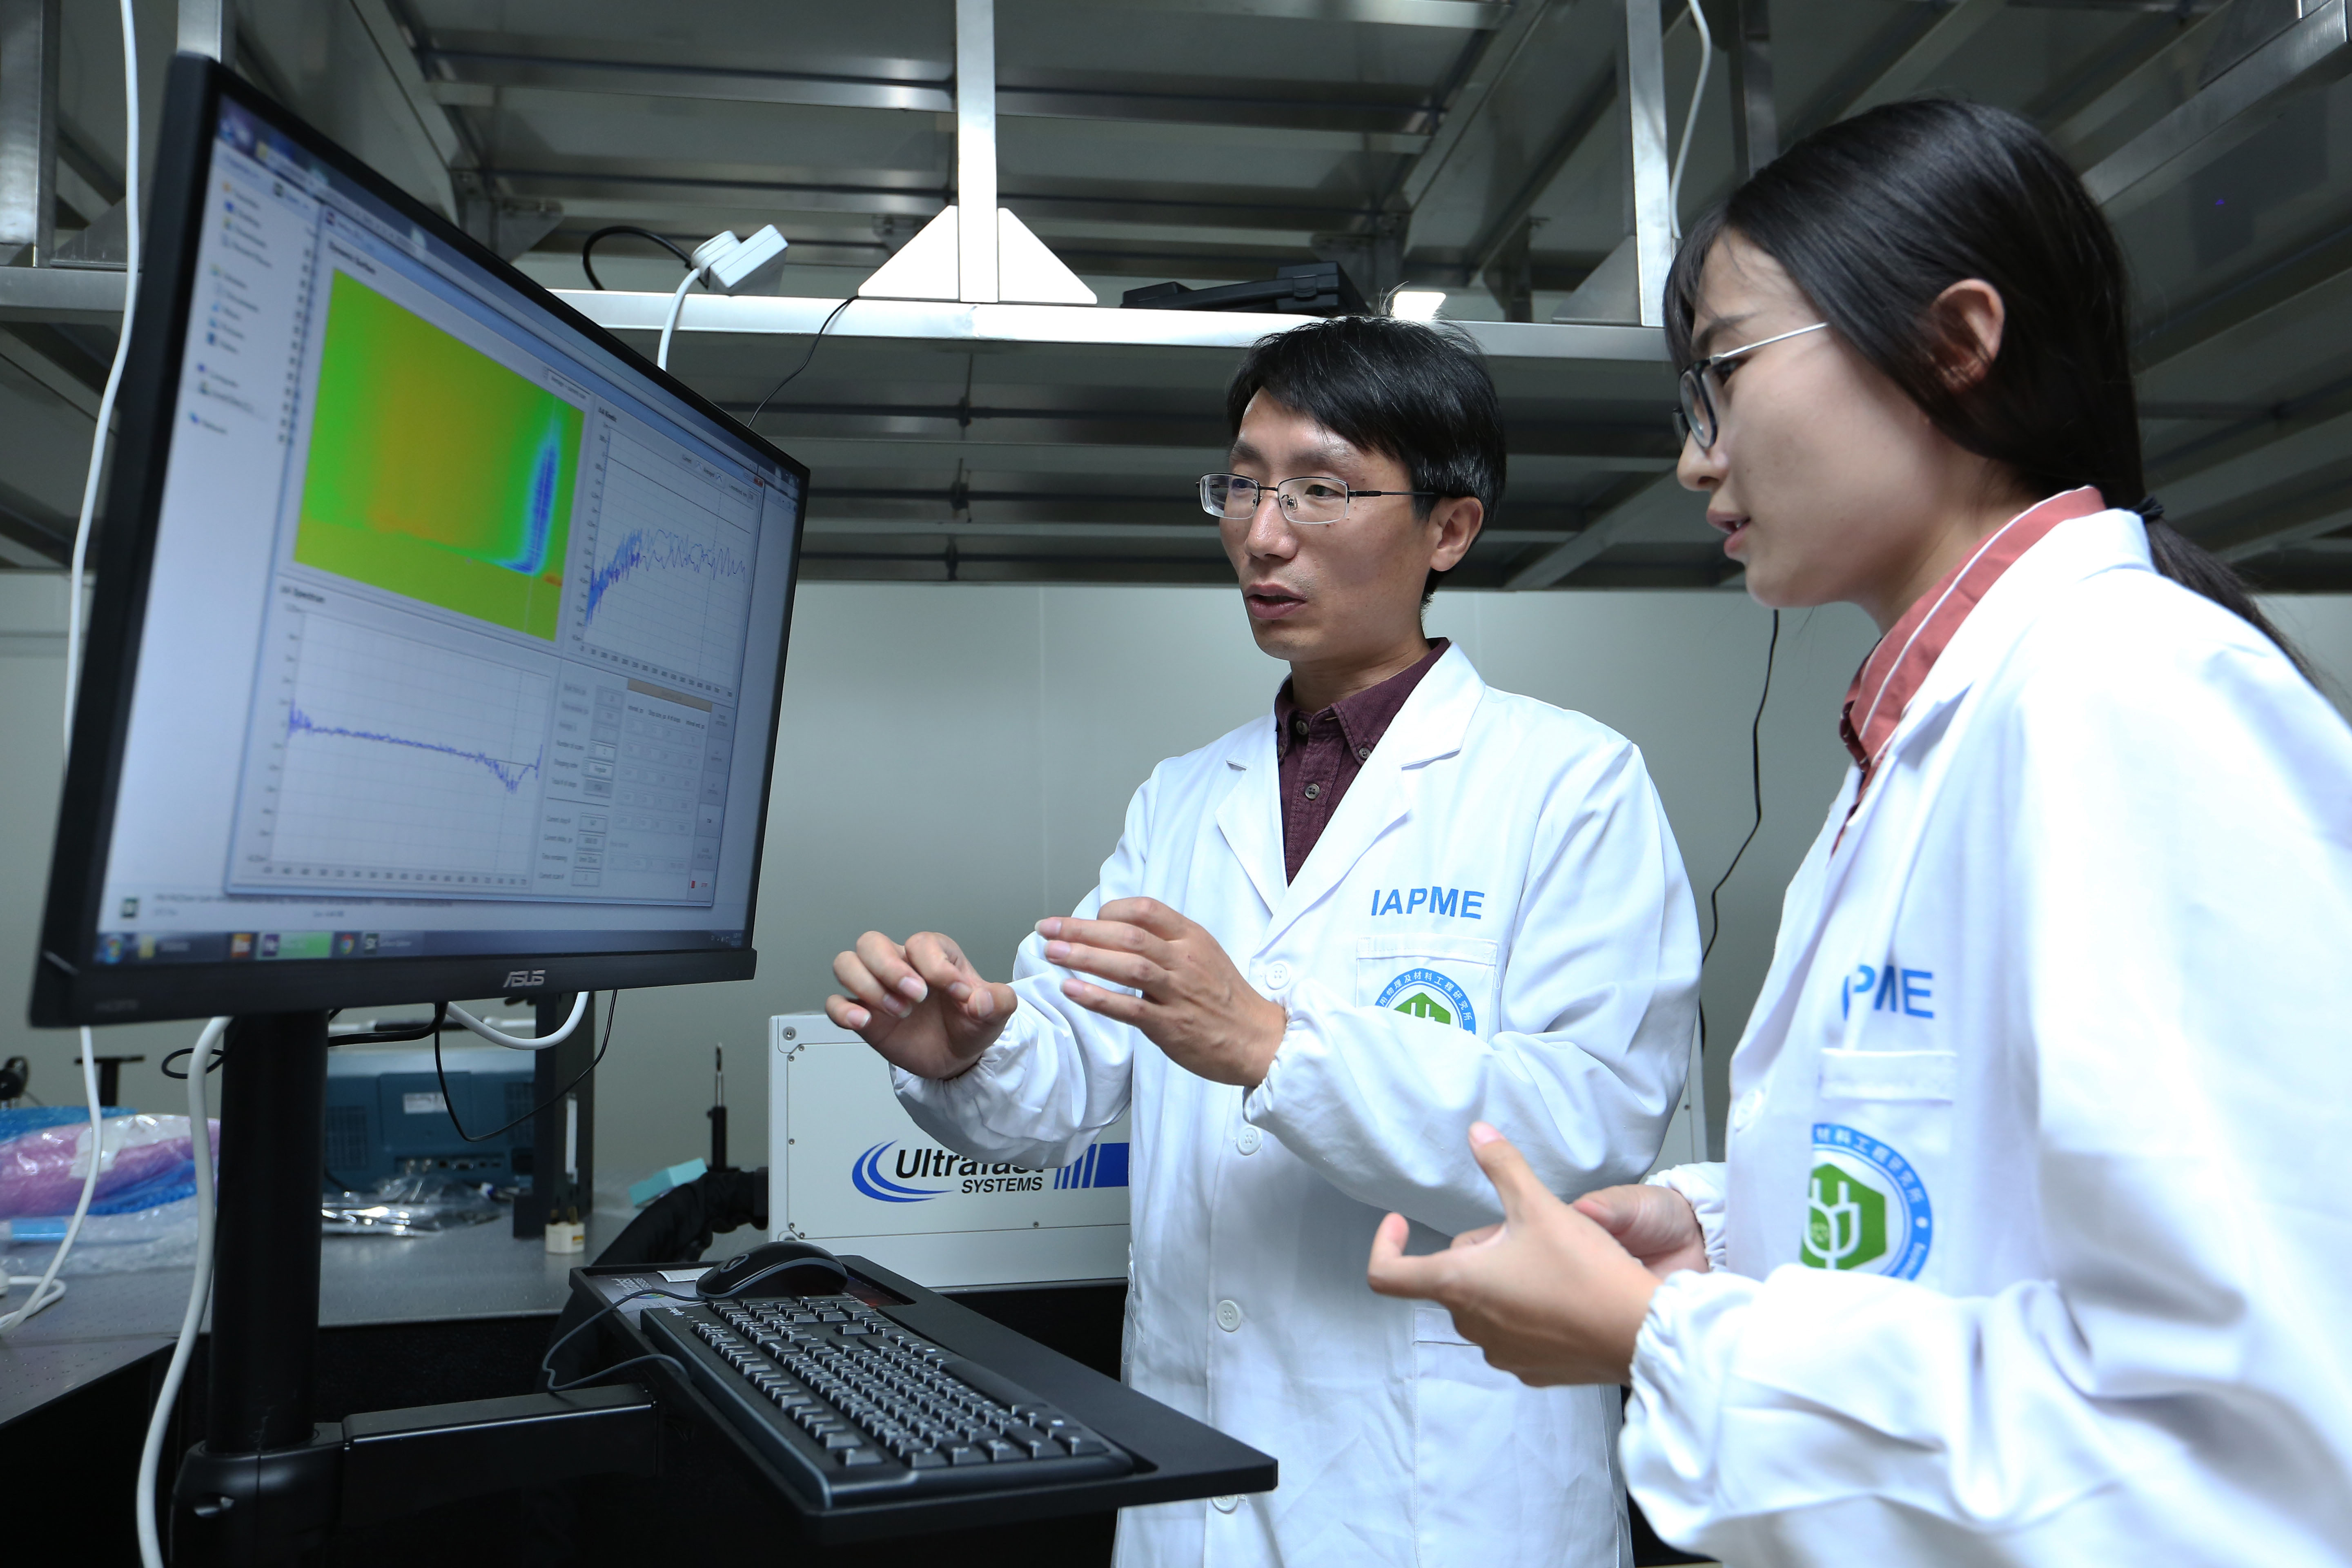 Xing Guichuan (left) is a pioneer in the development of perovskite solar cells